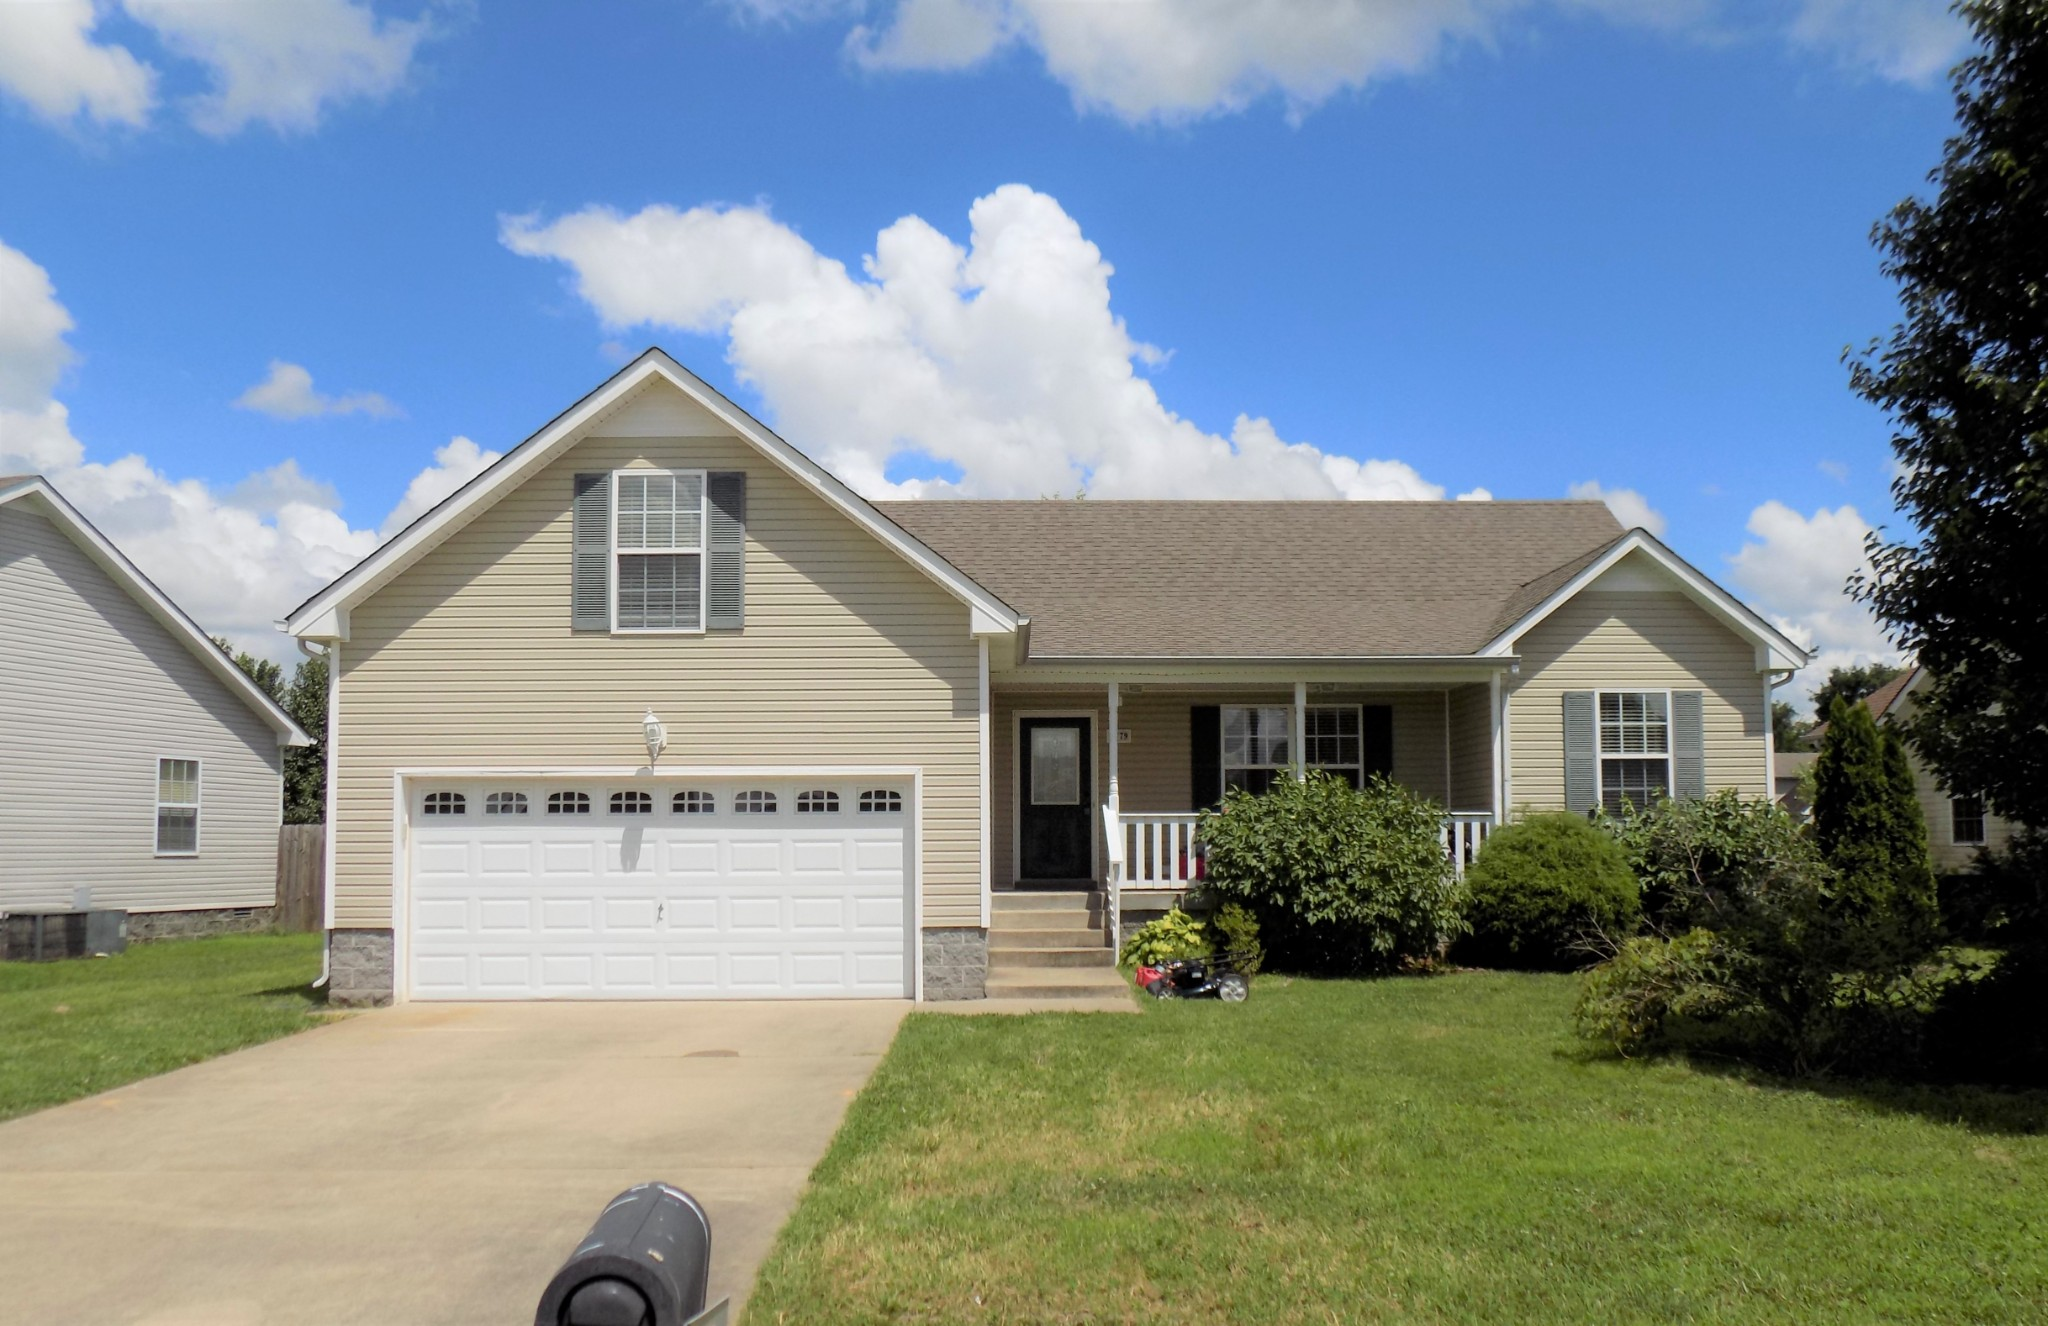 3779 Bret Dr Property Photo - Clarksville, TN real estate listing